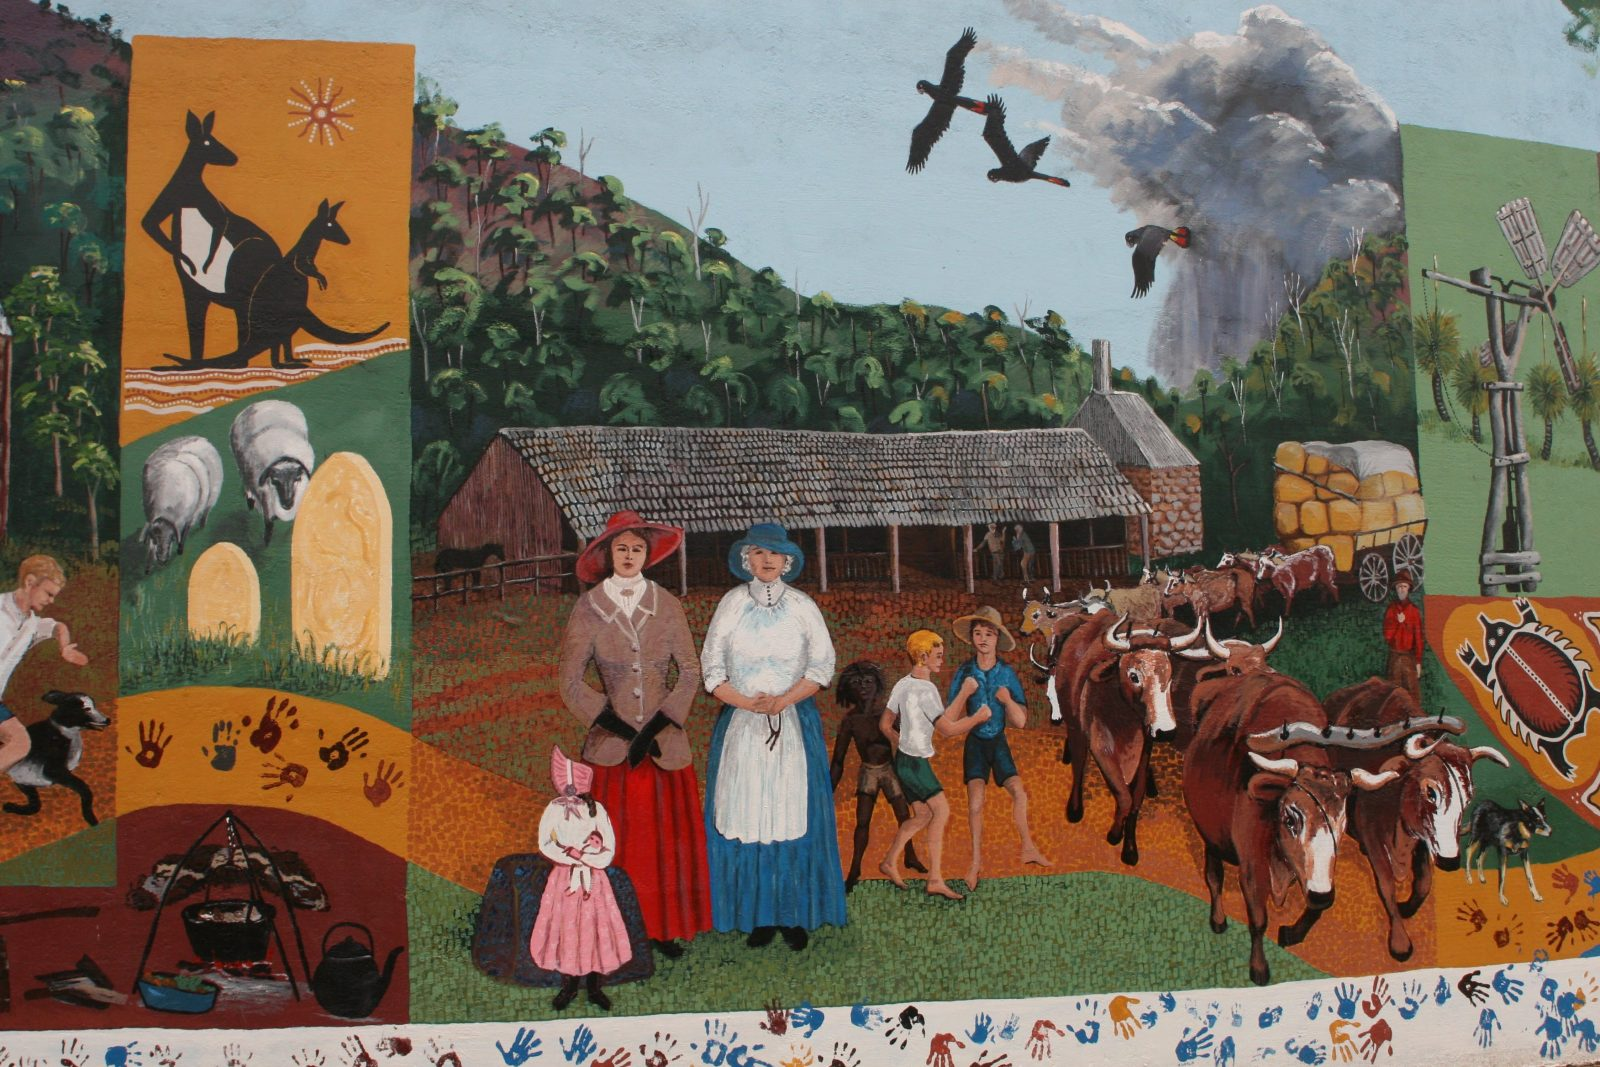 Part of the 'Spirit of the Land' Mural